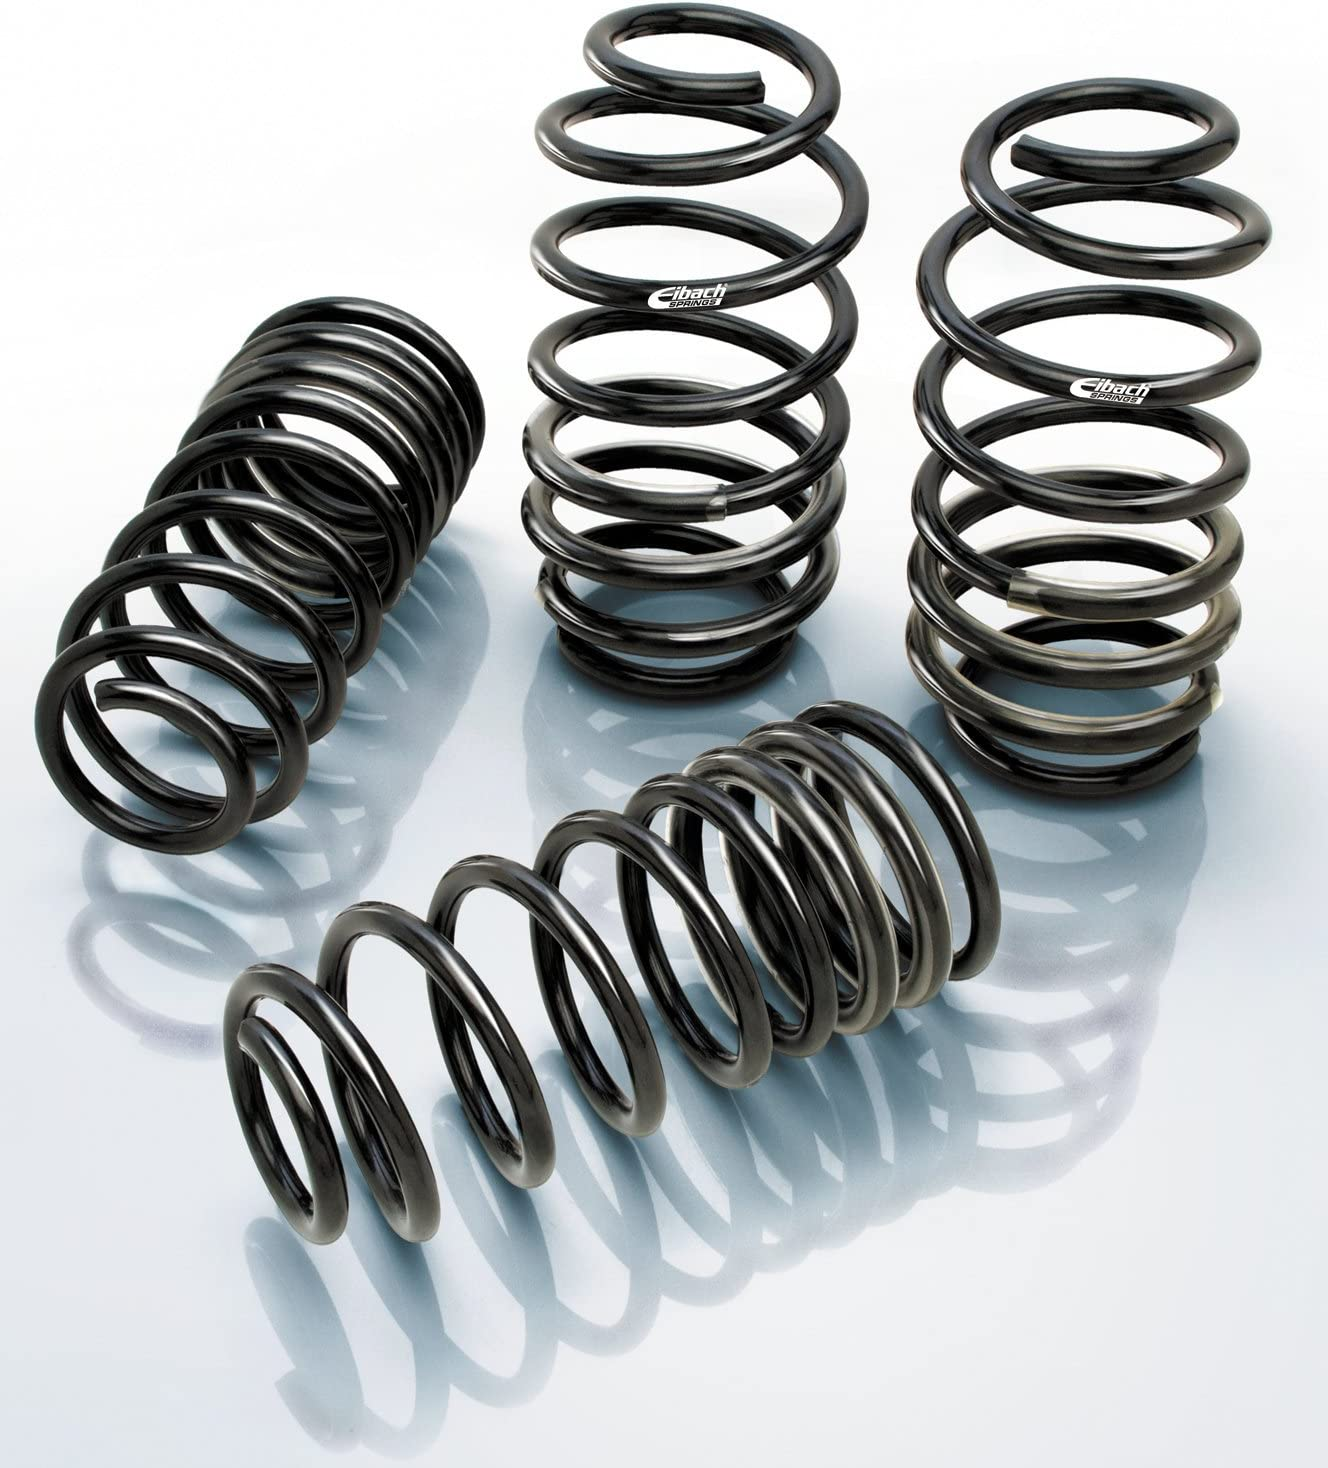 Eibach E1521-140 Performance Pro-Kit Springs